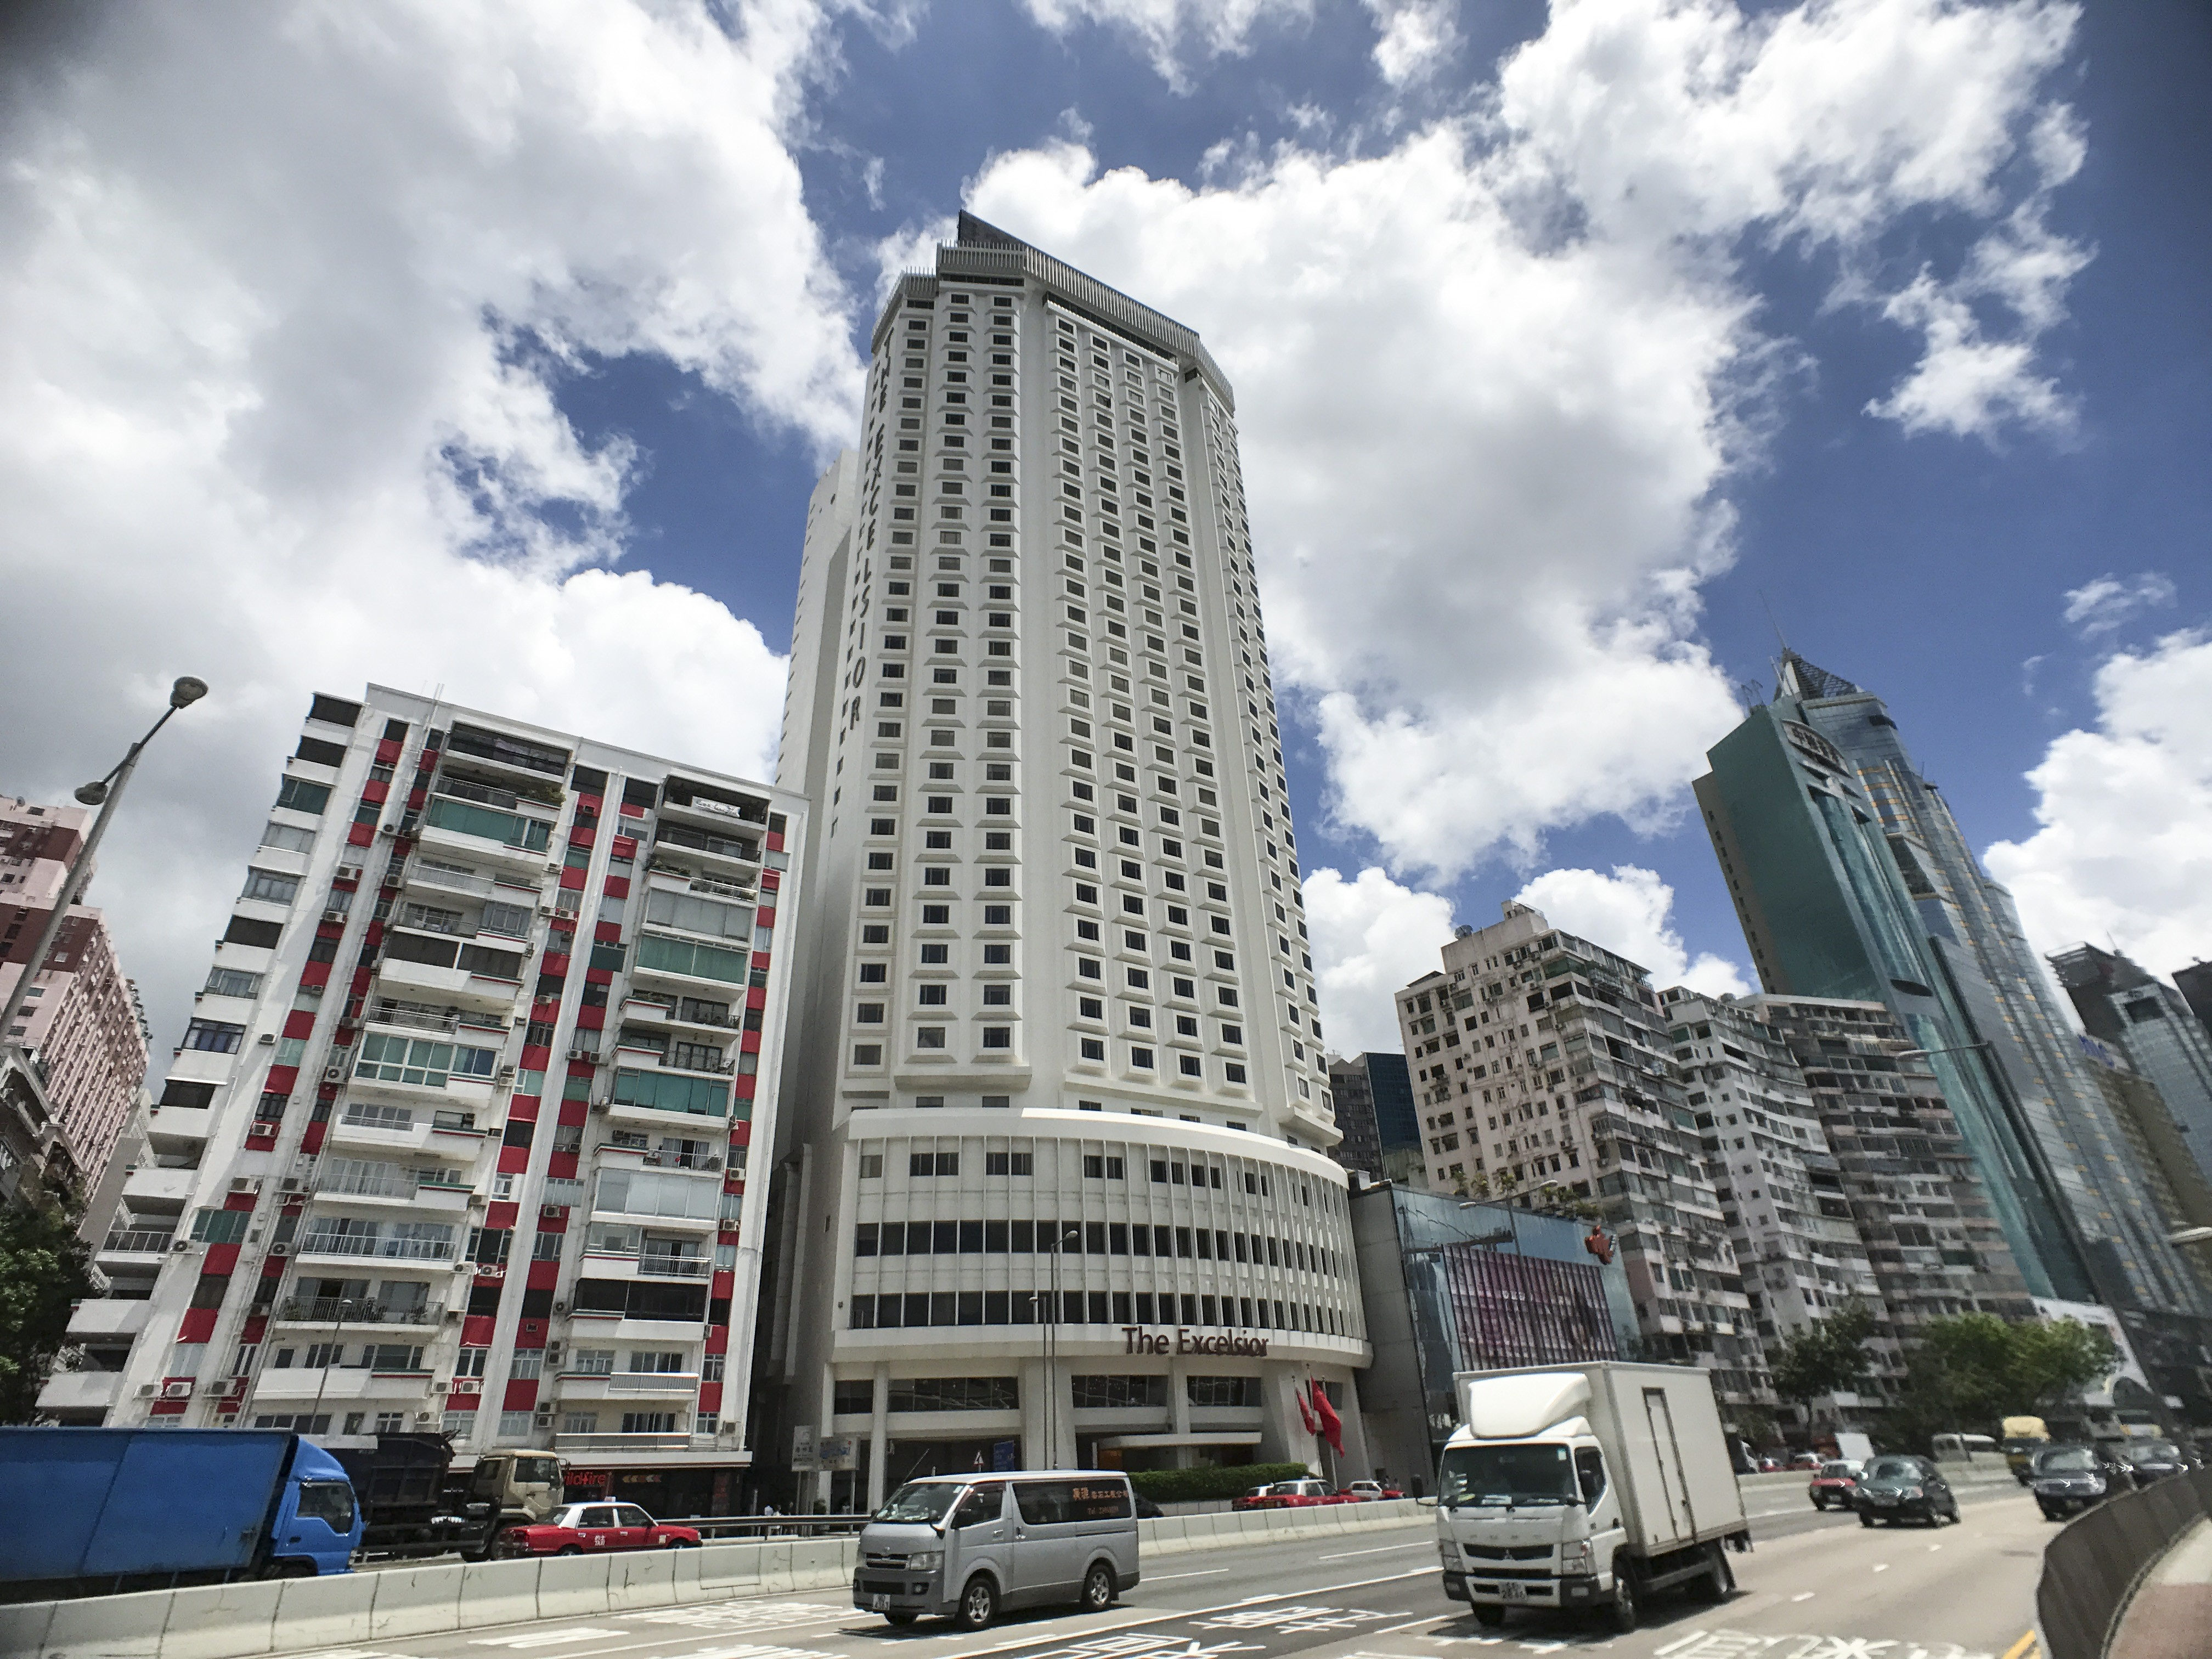 Hong Kong S Iconic Excelsior Hotel To Shut In March 2019 For